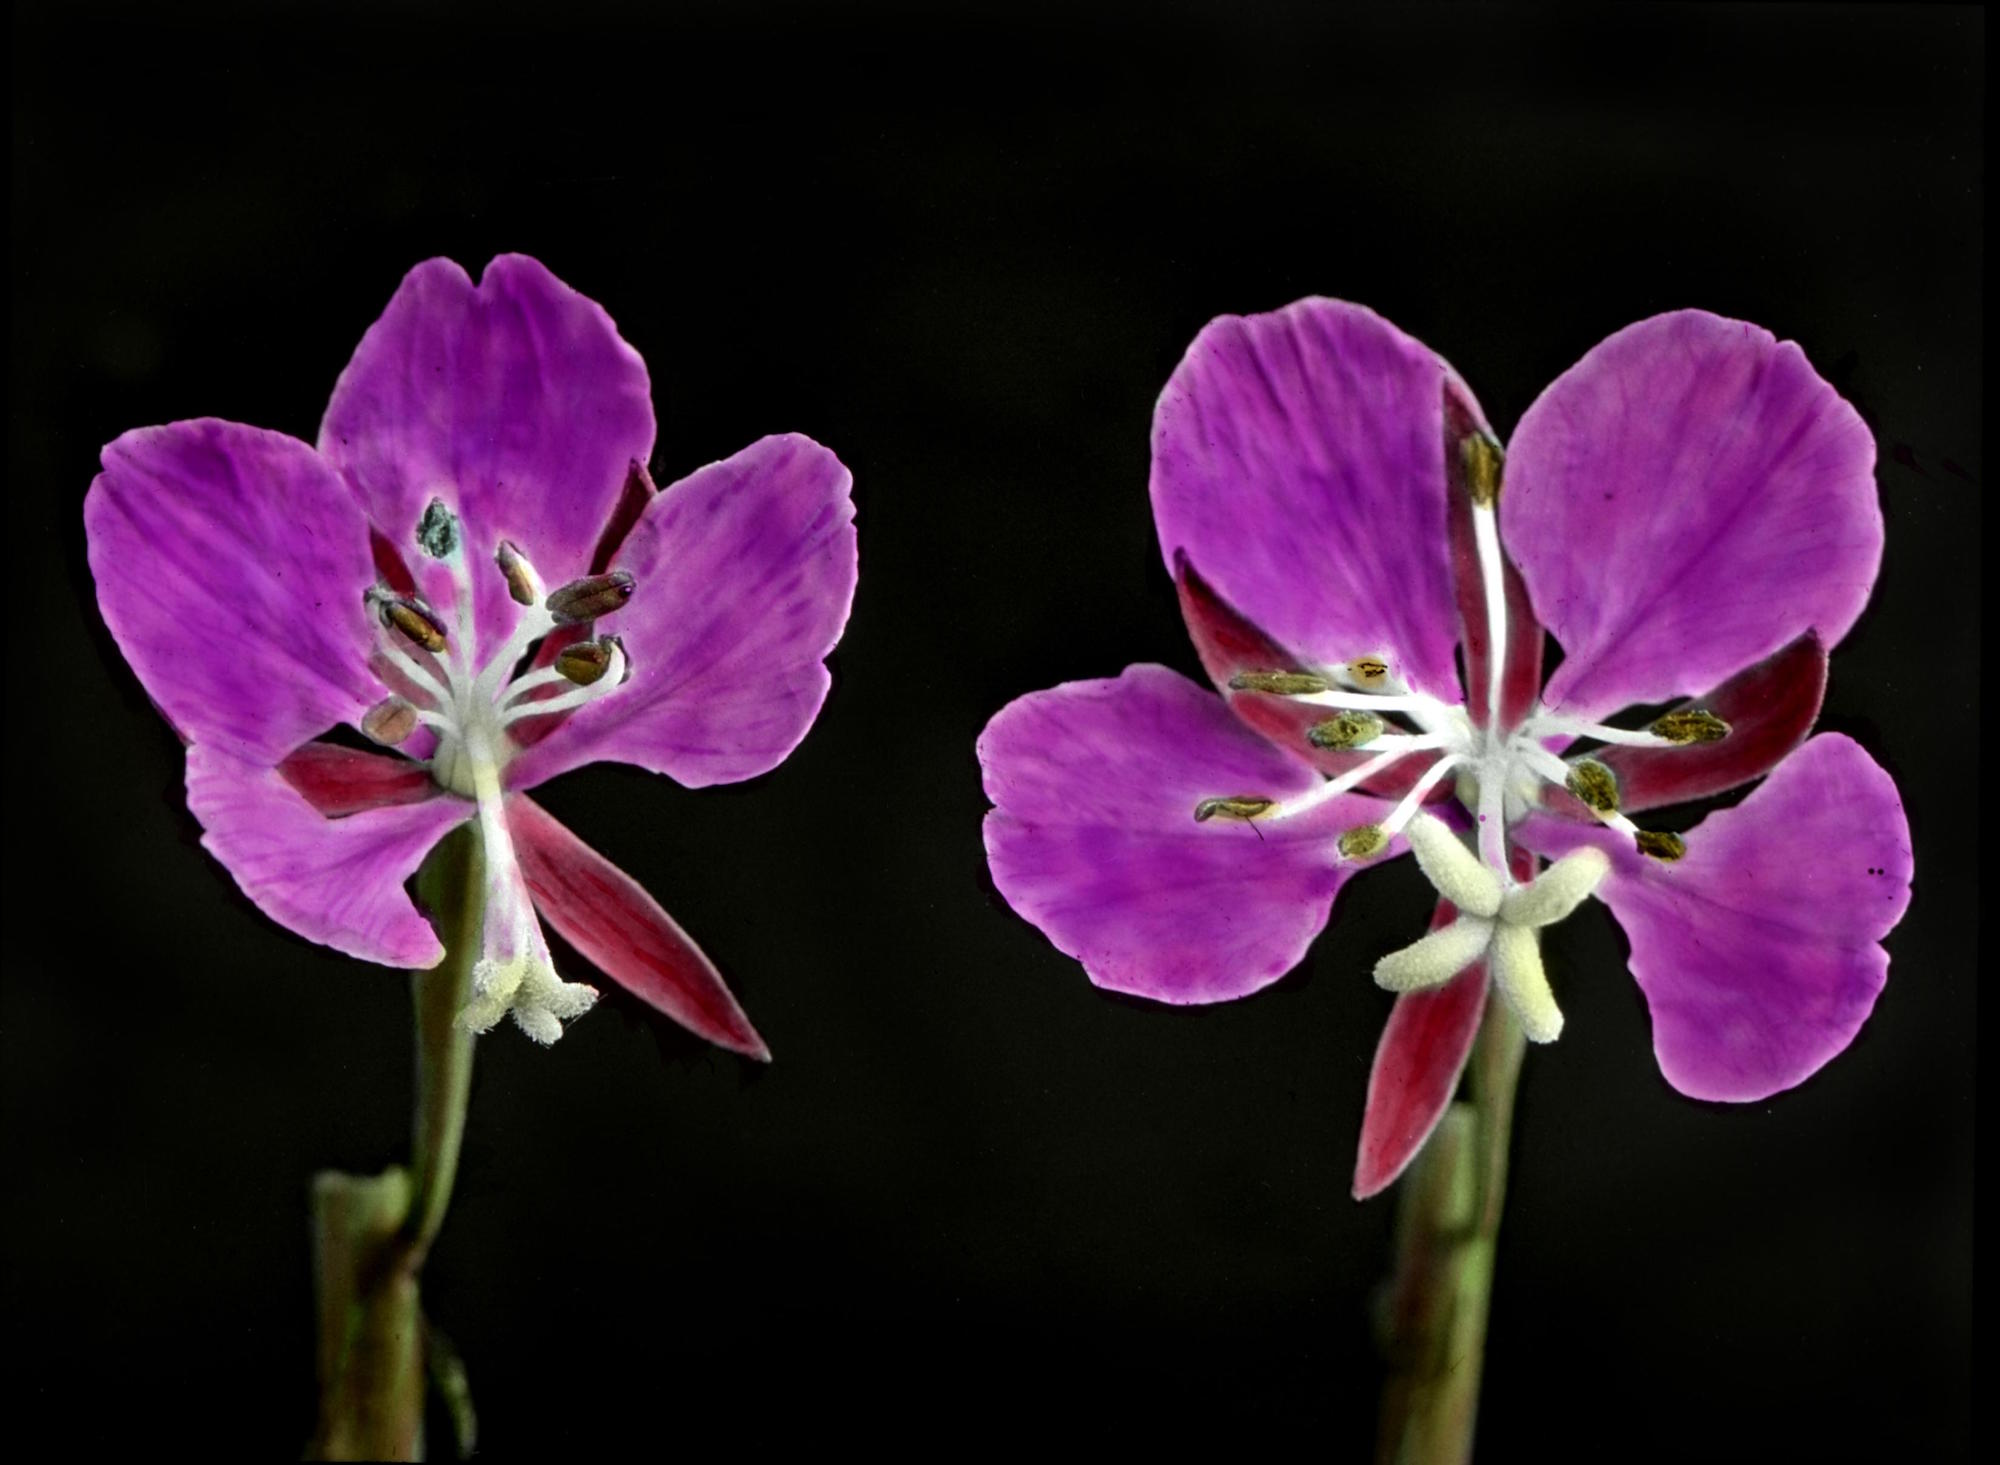 Fireweed blossoms in middle stage of bloom